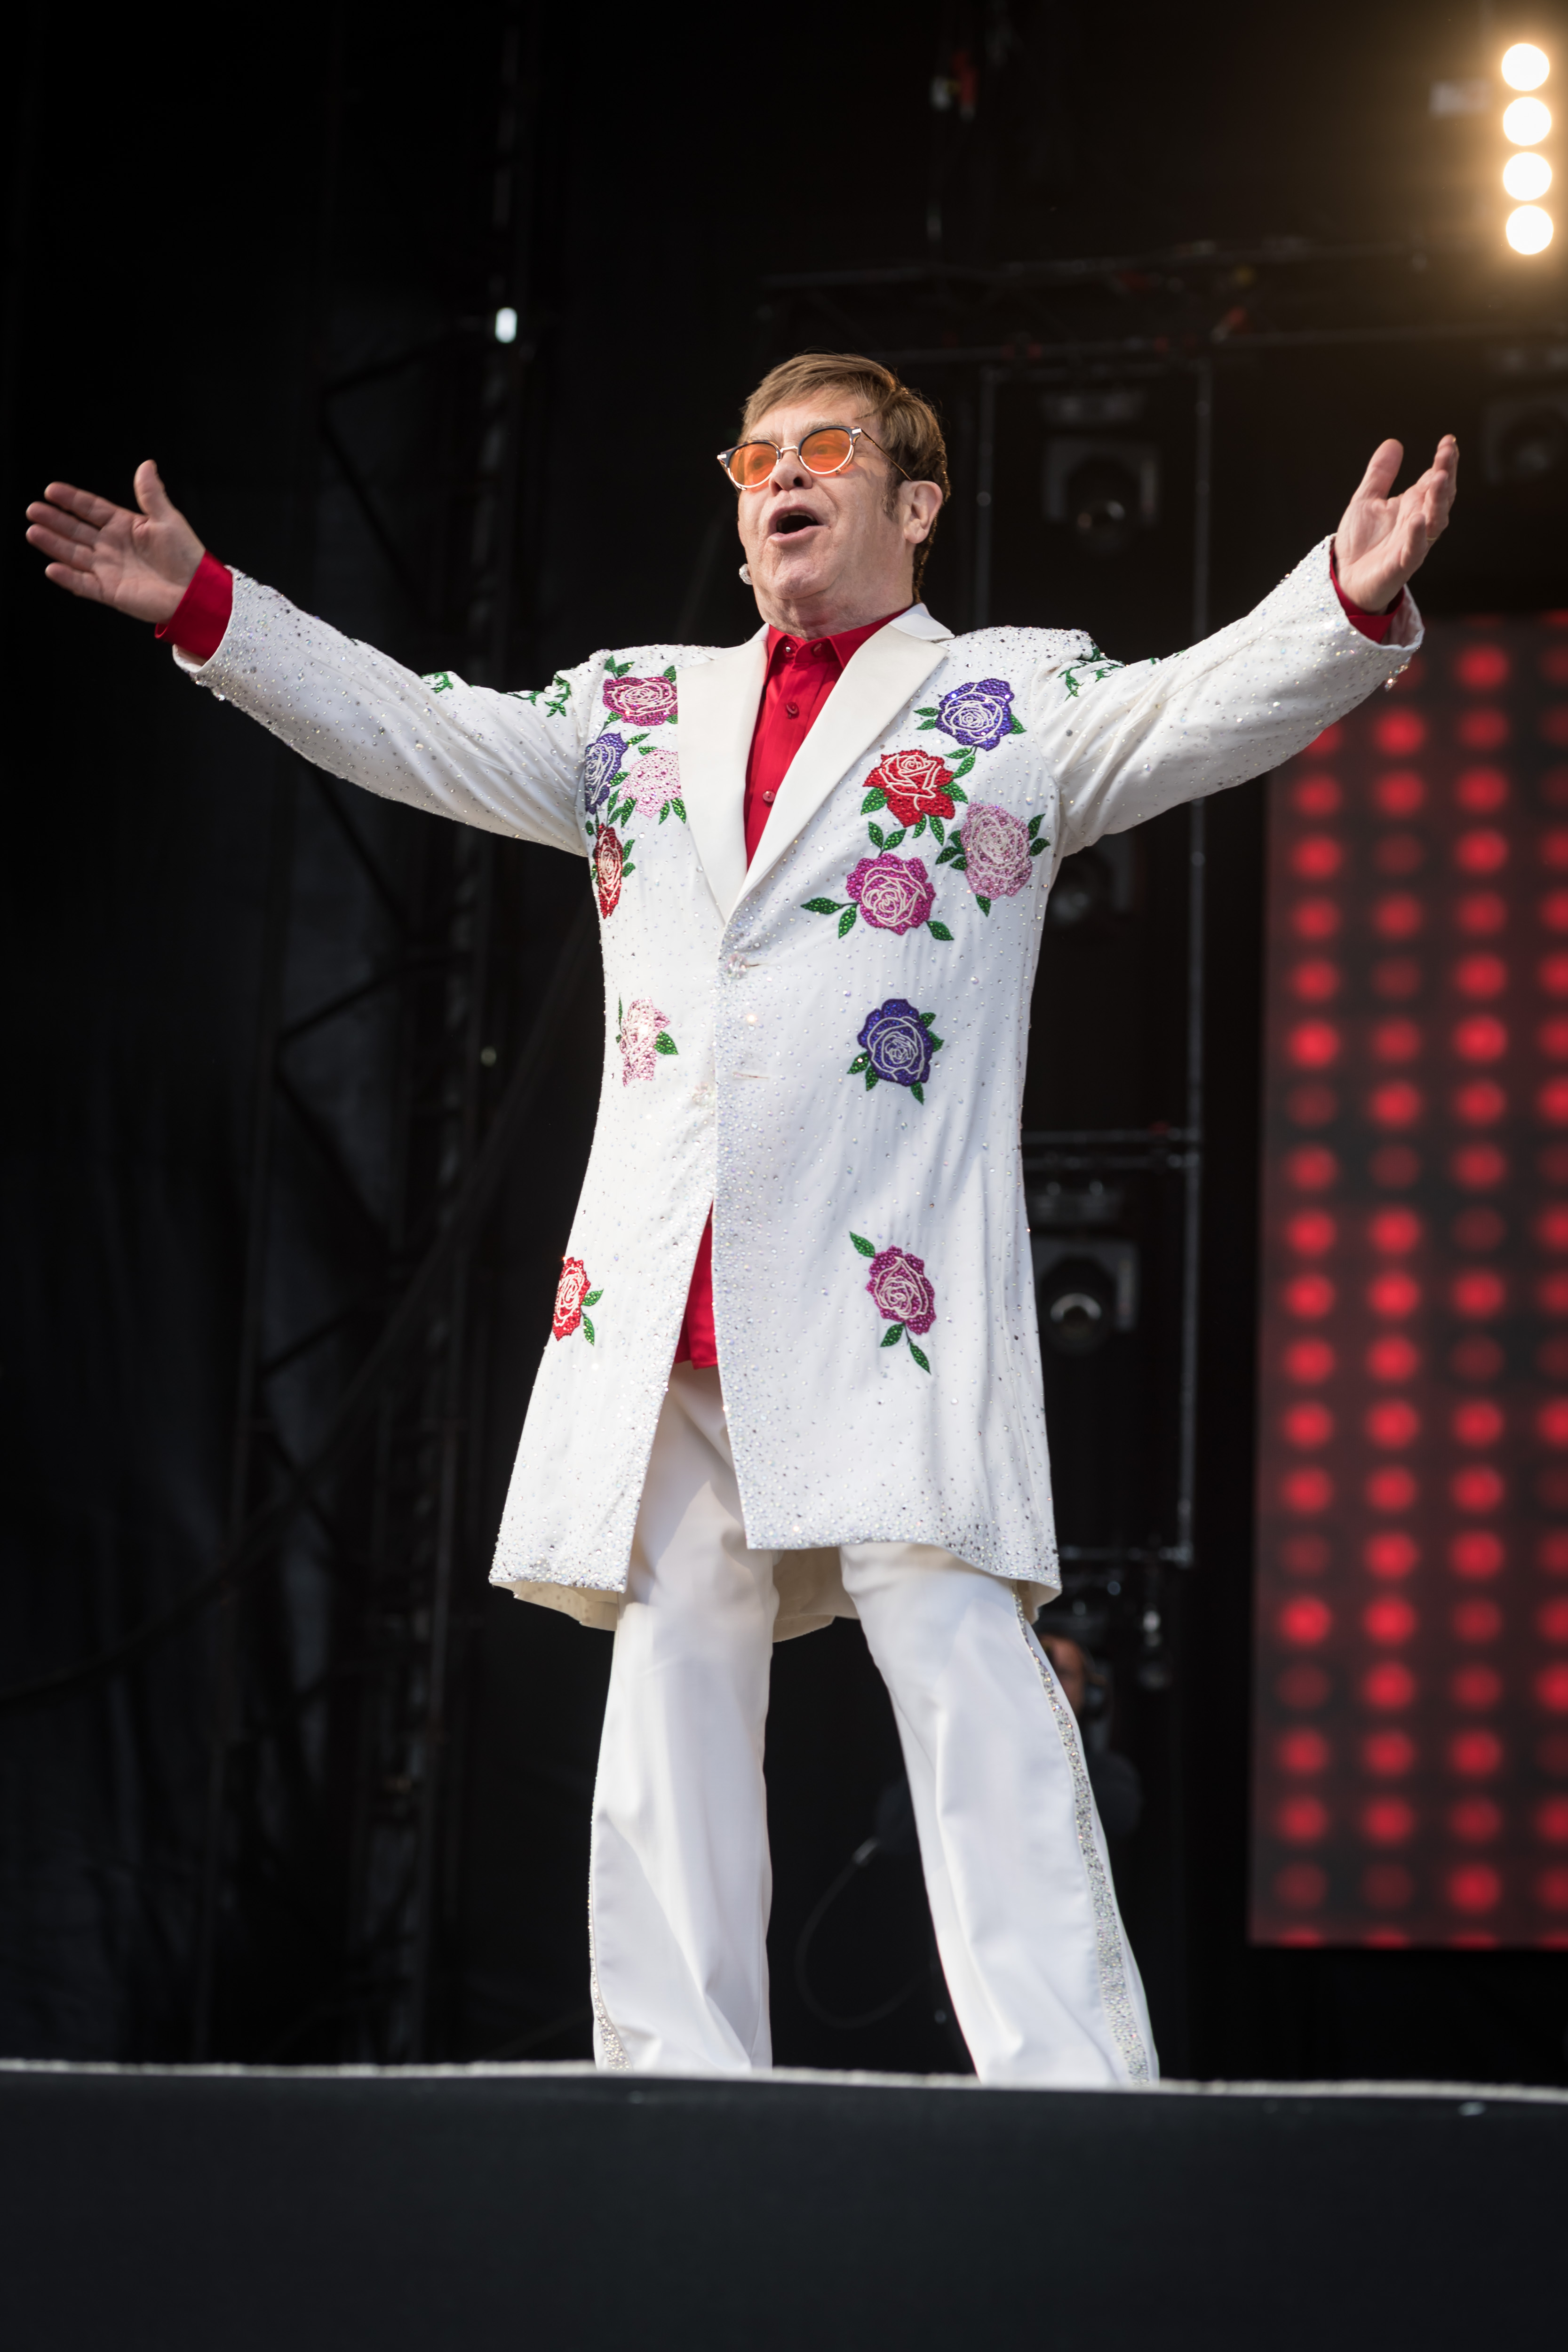 Sir Elton is one of the few people in the history of time that can be both elegant and flashy. He's truly the best!